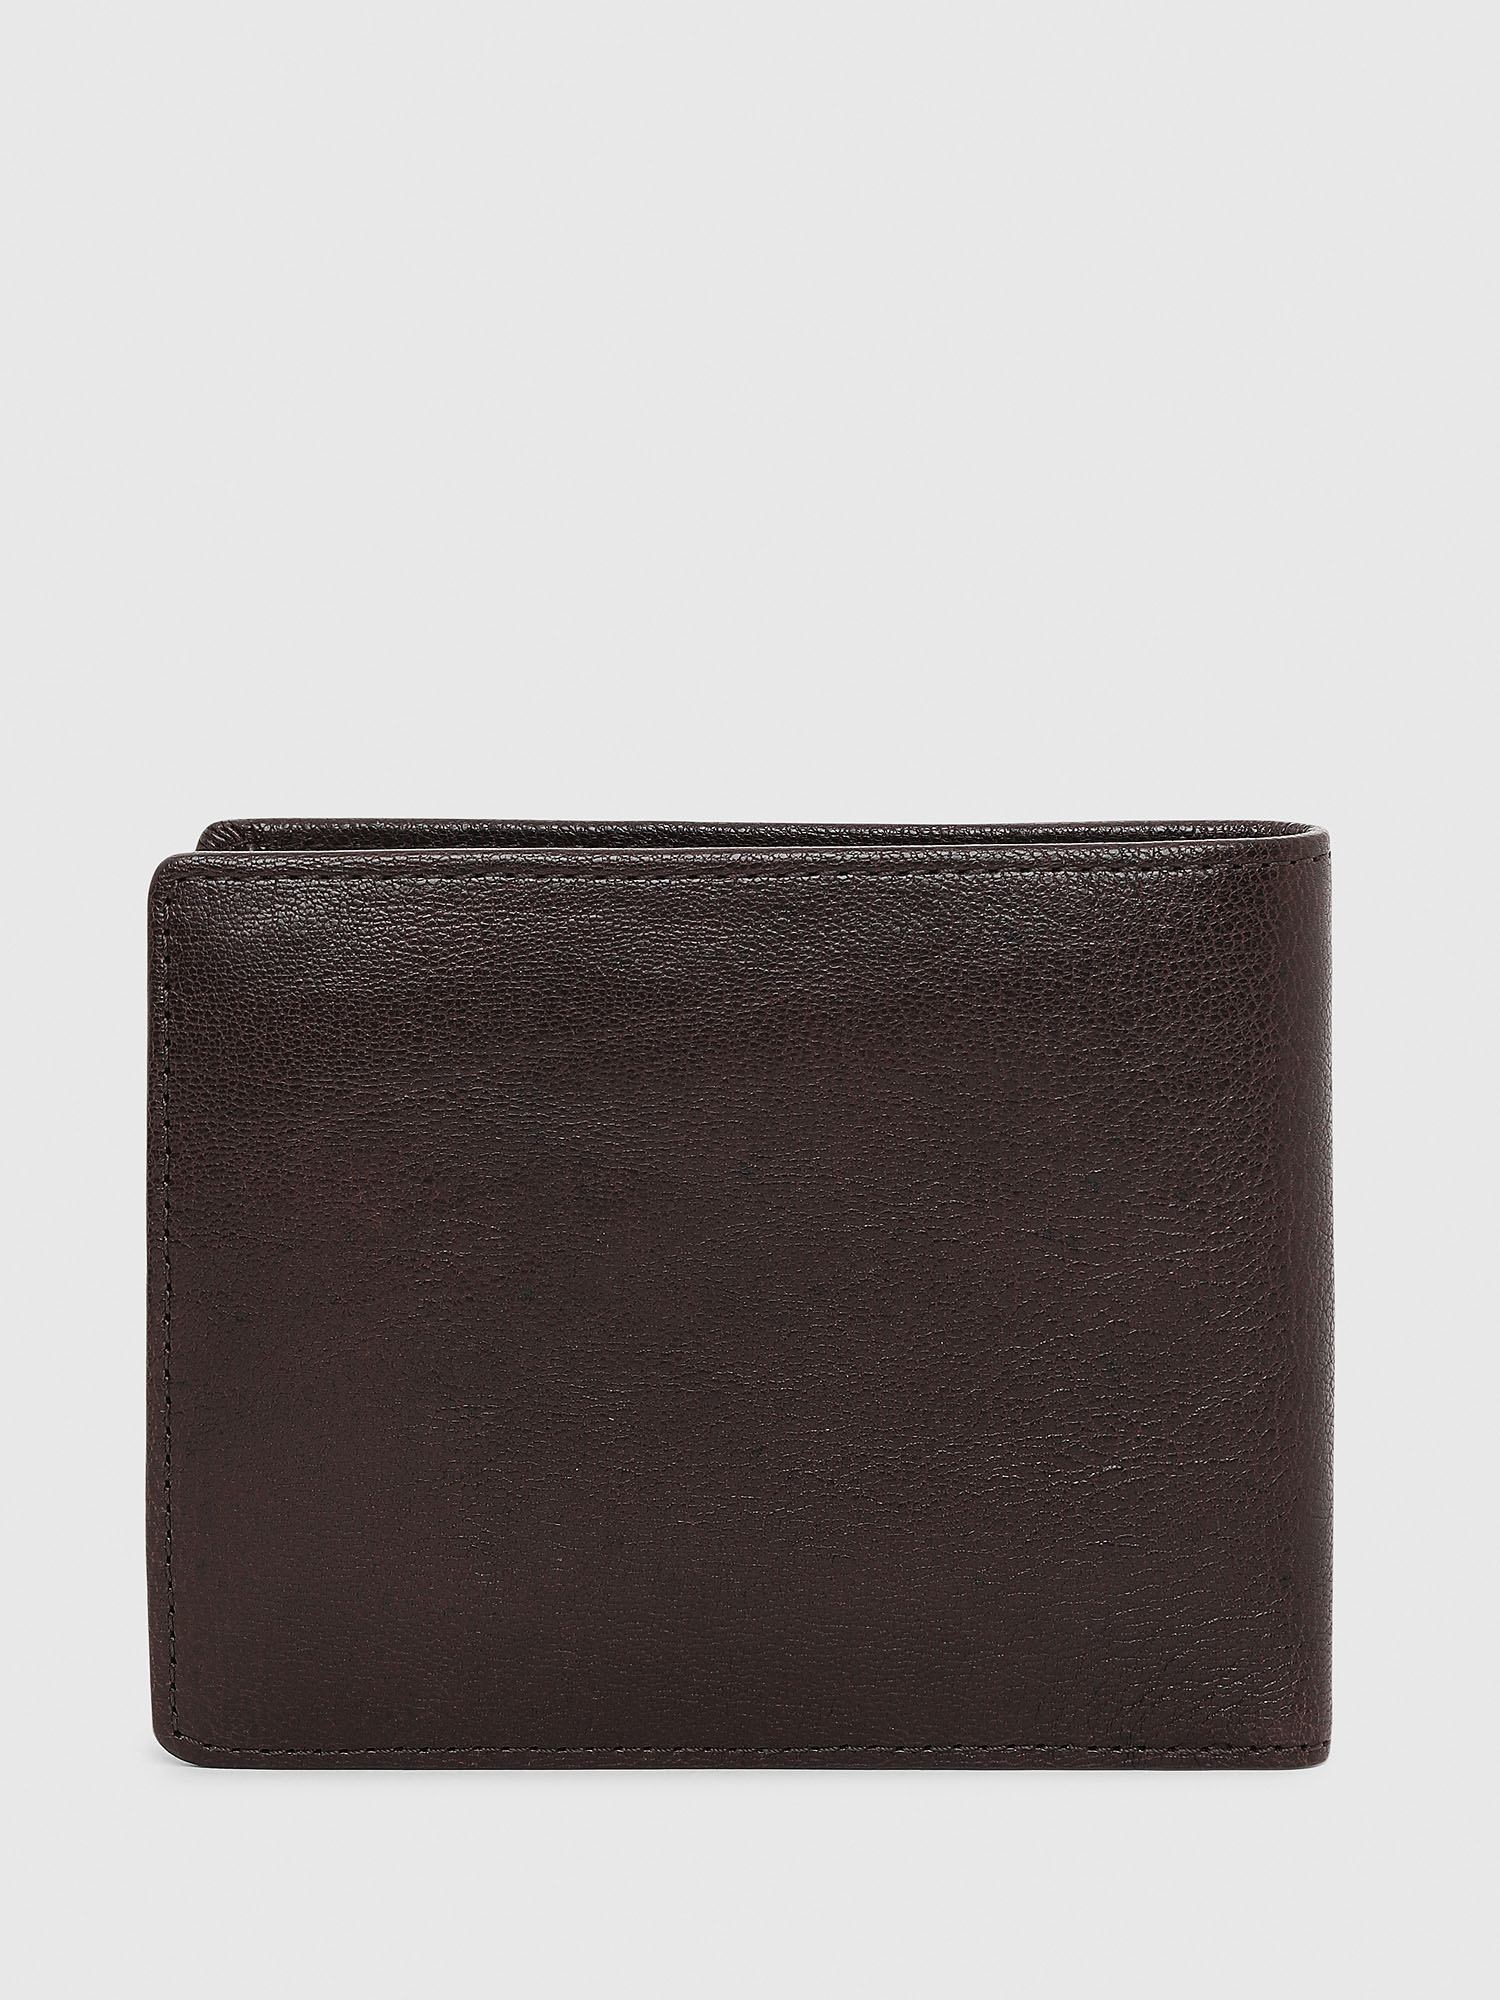 Diesel - HIRESH,  - Small Wallets - Image 2